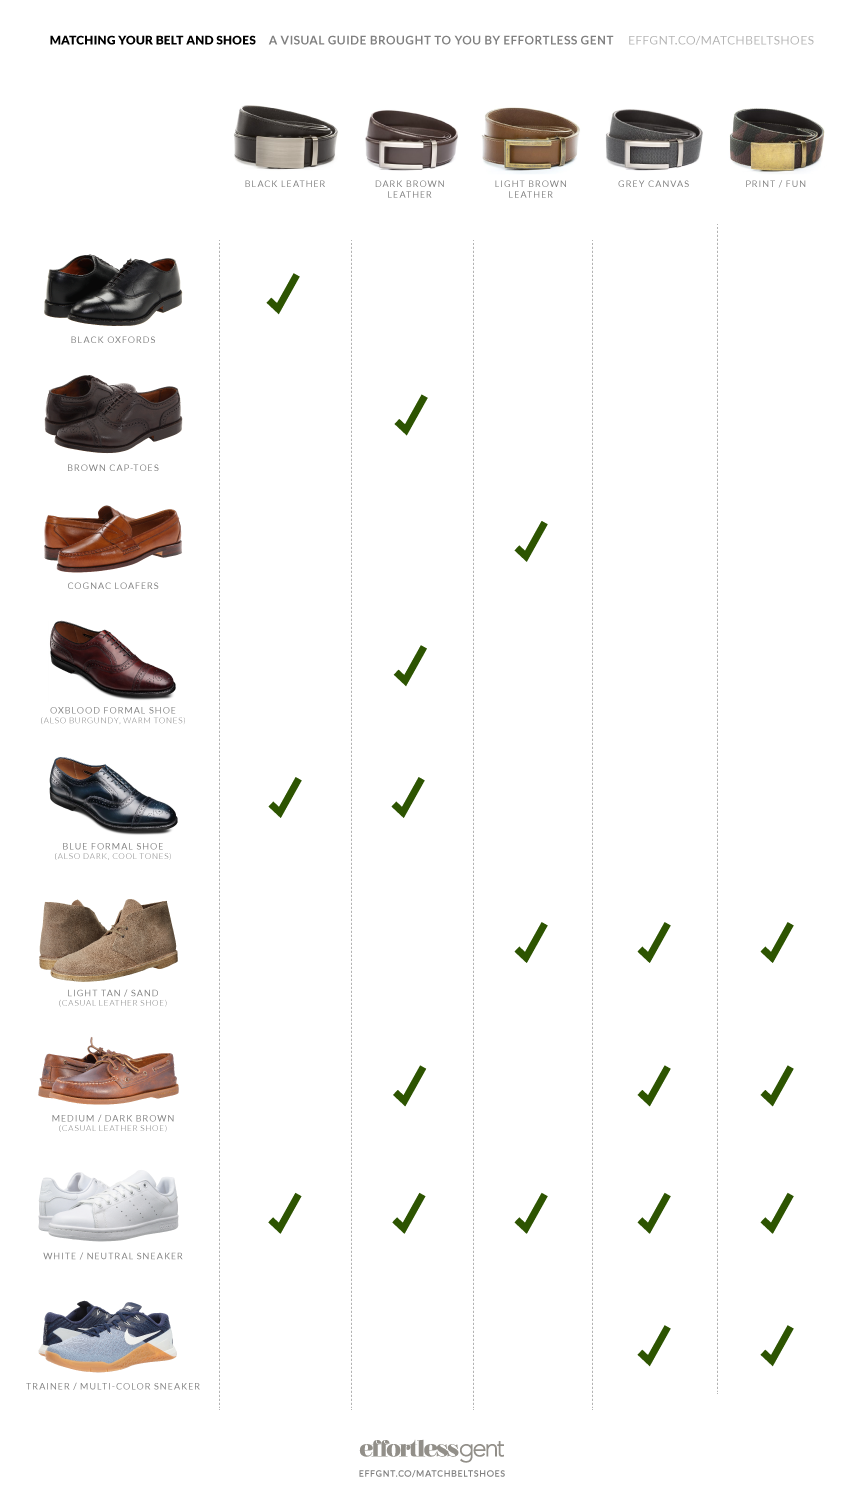 how to match your belt and shoes - infographic